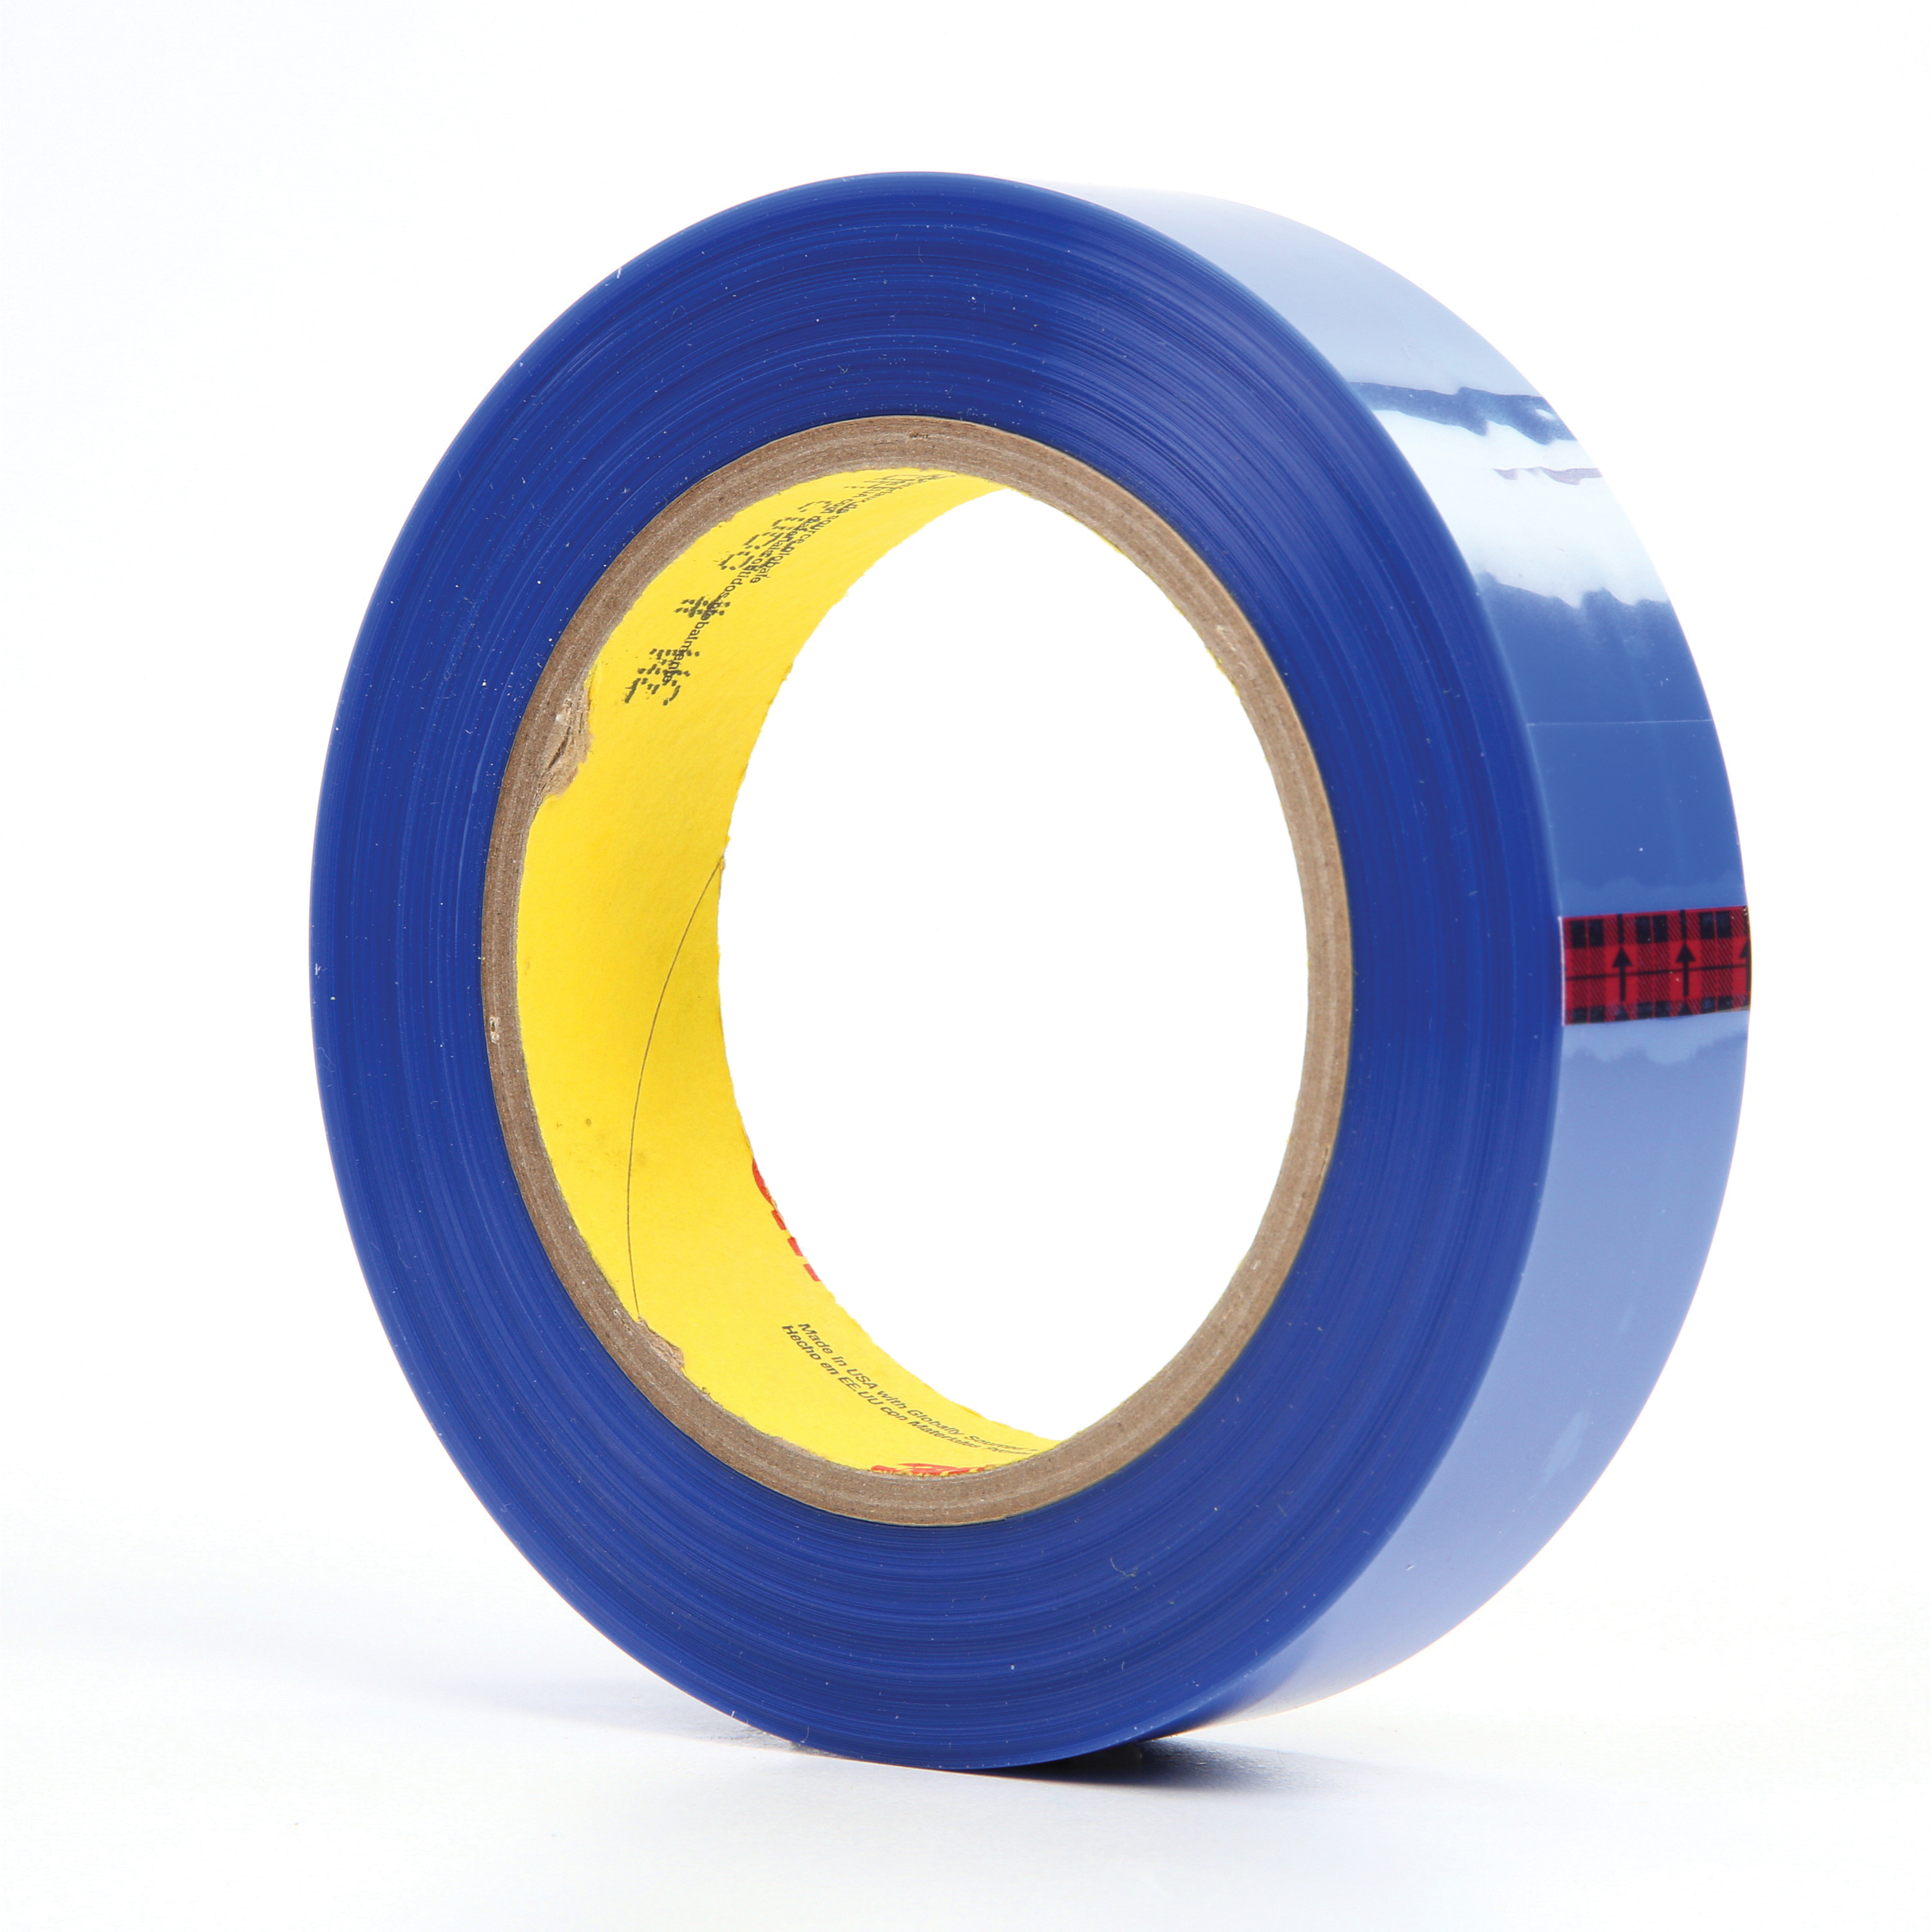 3M™ 051111-92777 General Purpose Masking Tape, 72 yd L x 1 in W, 3.5 mil THK, Silicone Adhesive, 2 mil Polyester Backing